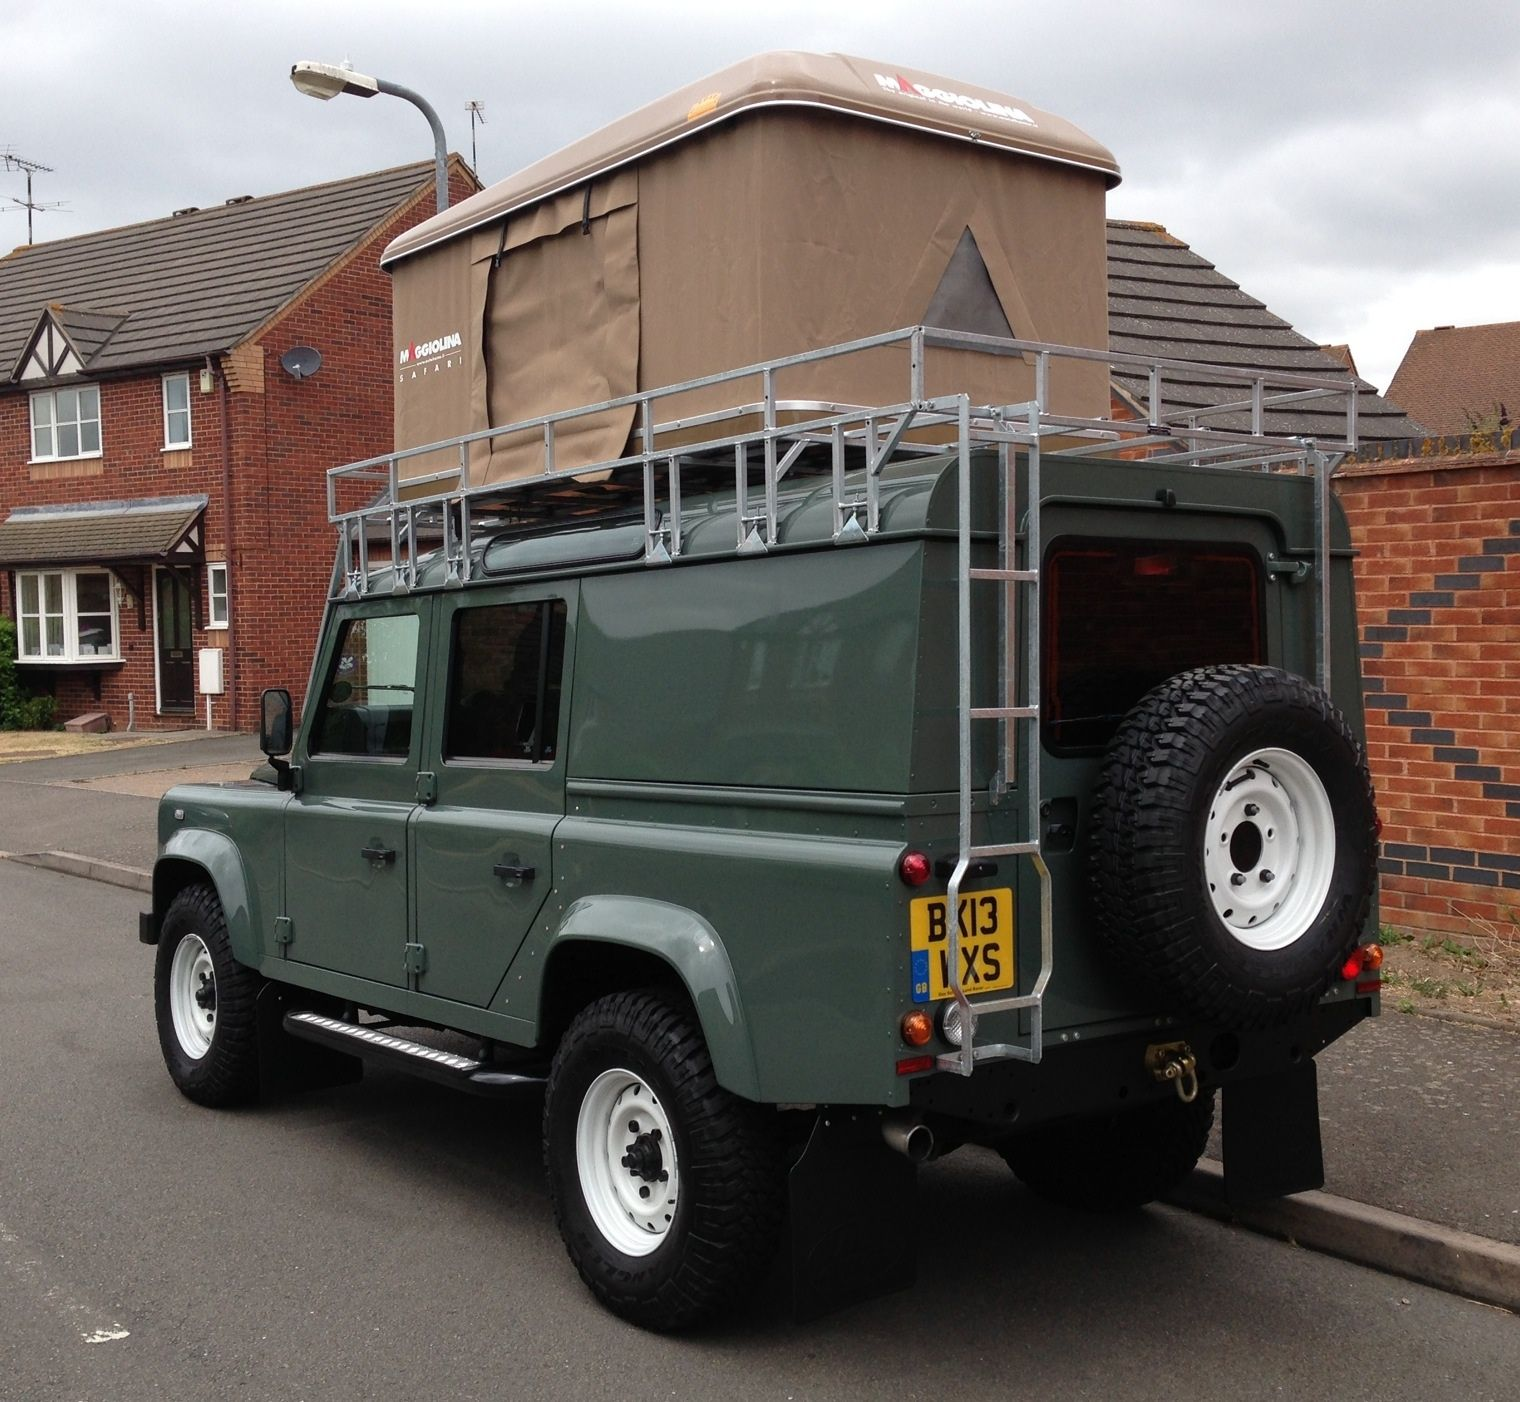 Defender 110 With Full Roof Rack And Maggiolina Roof Tent Land Rover Camping Land Rover Land Rover Defender Camping